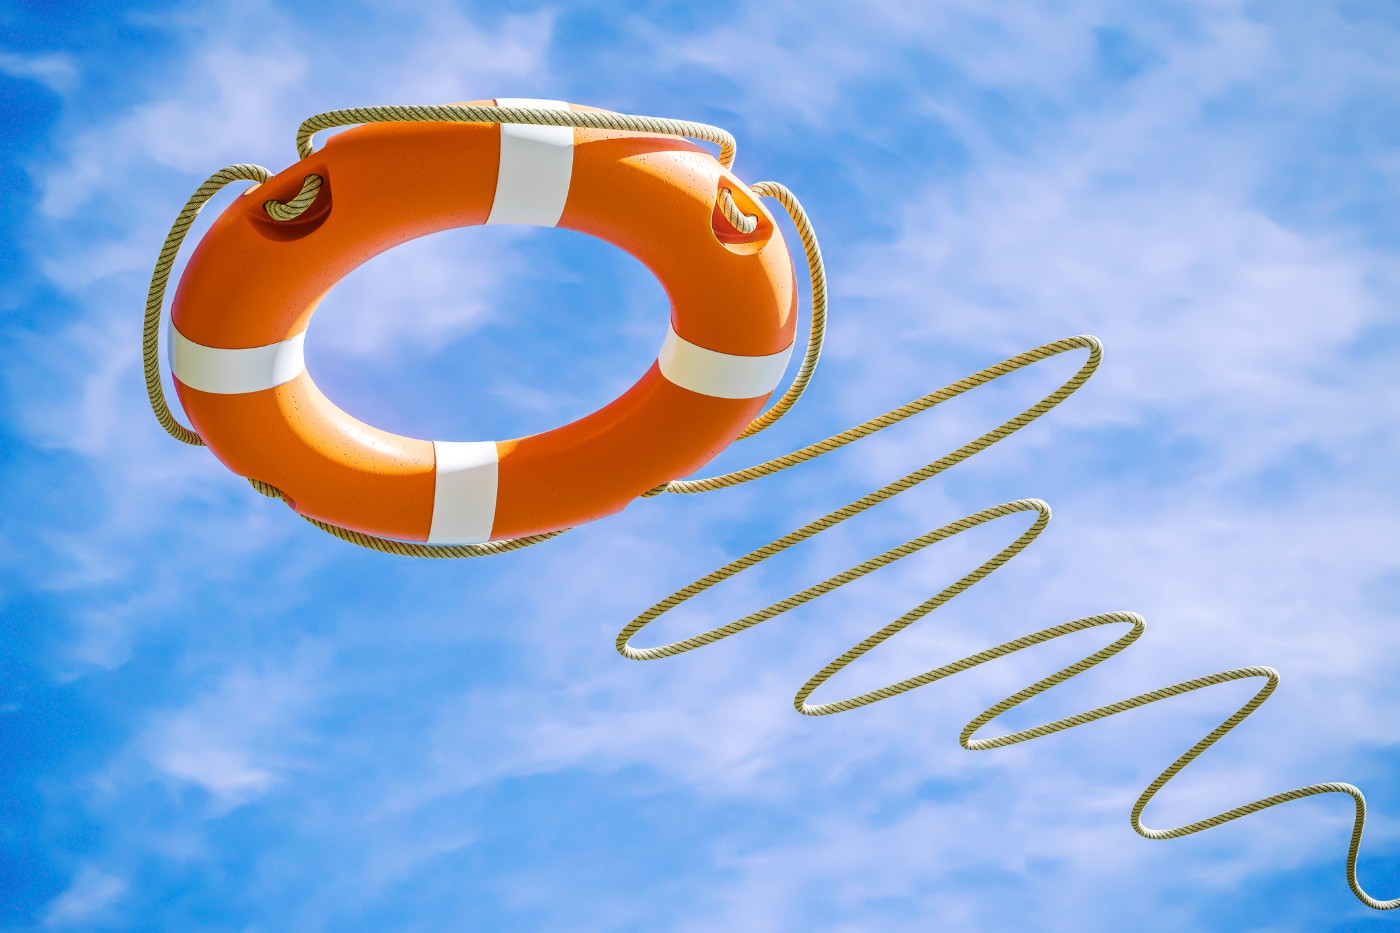 https://tickertapecdn.tdameritrade.com/assets/images/pages/md/Life preserver: tossing a financial lifeline